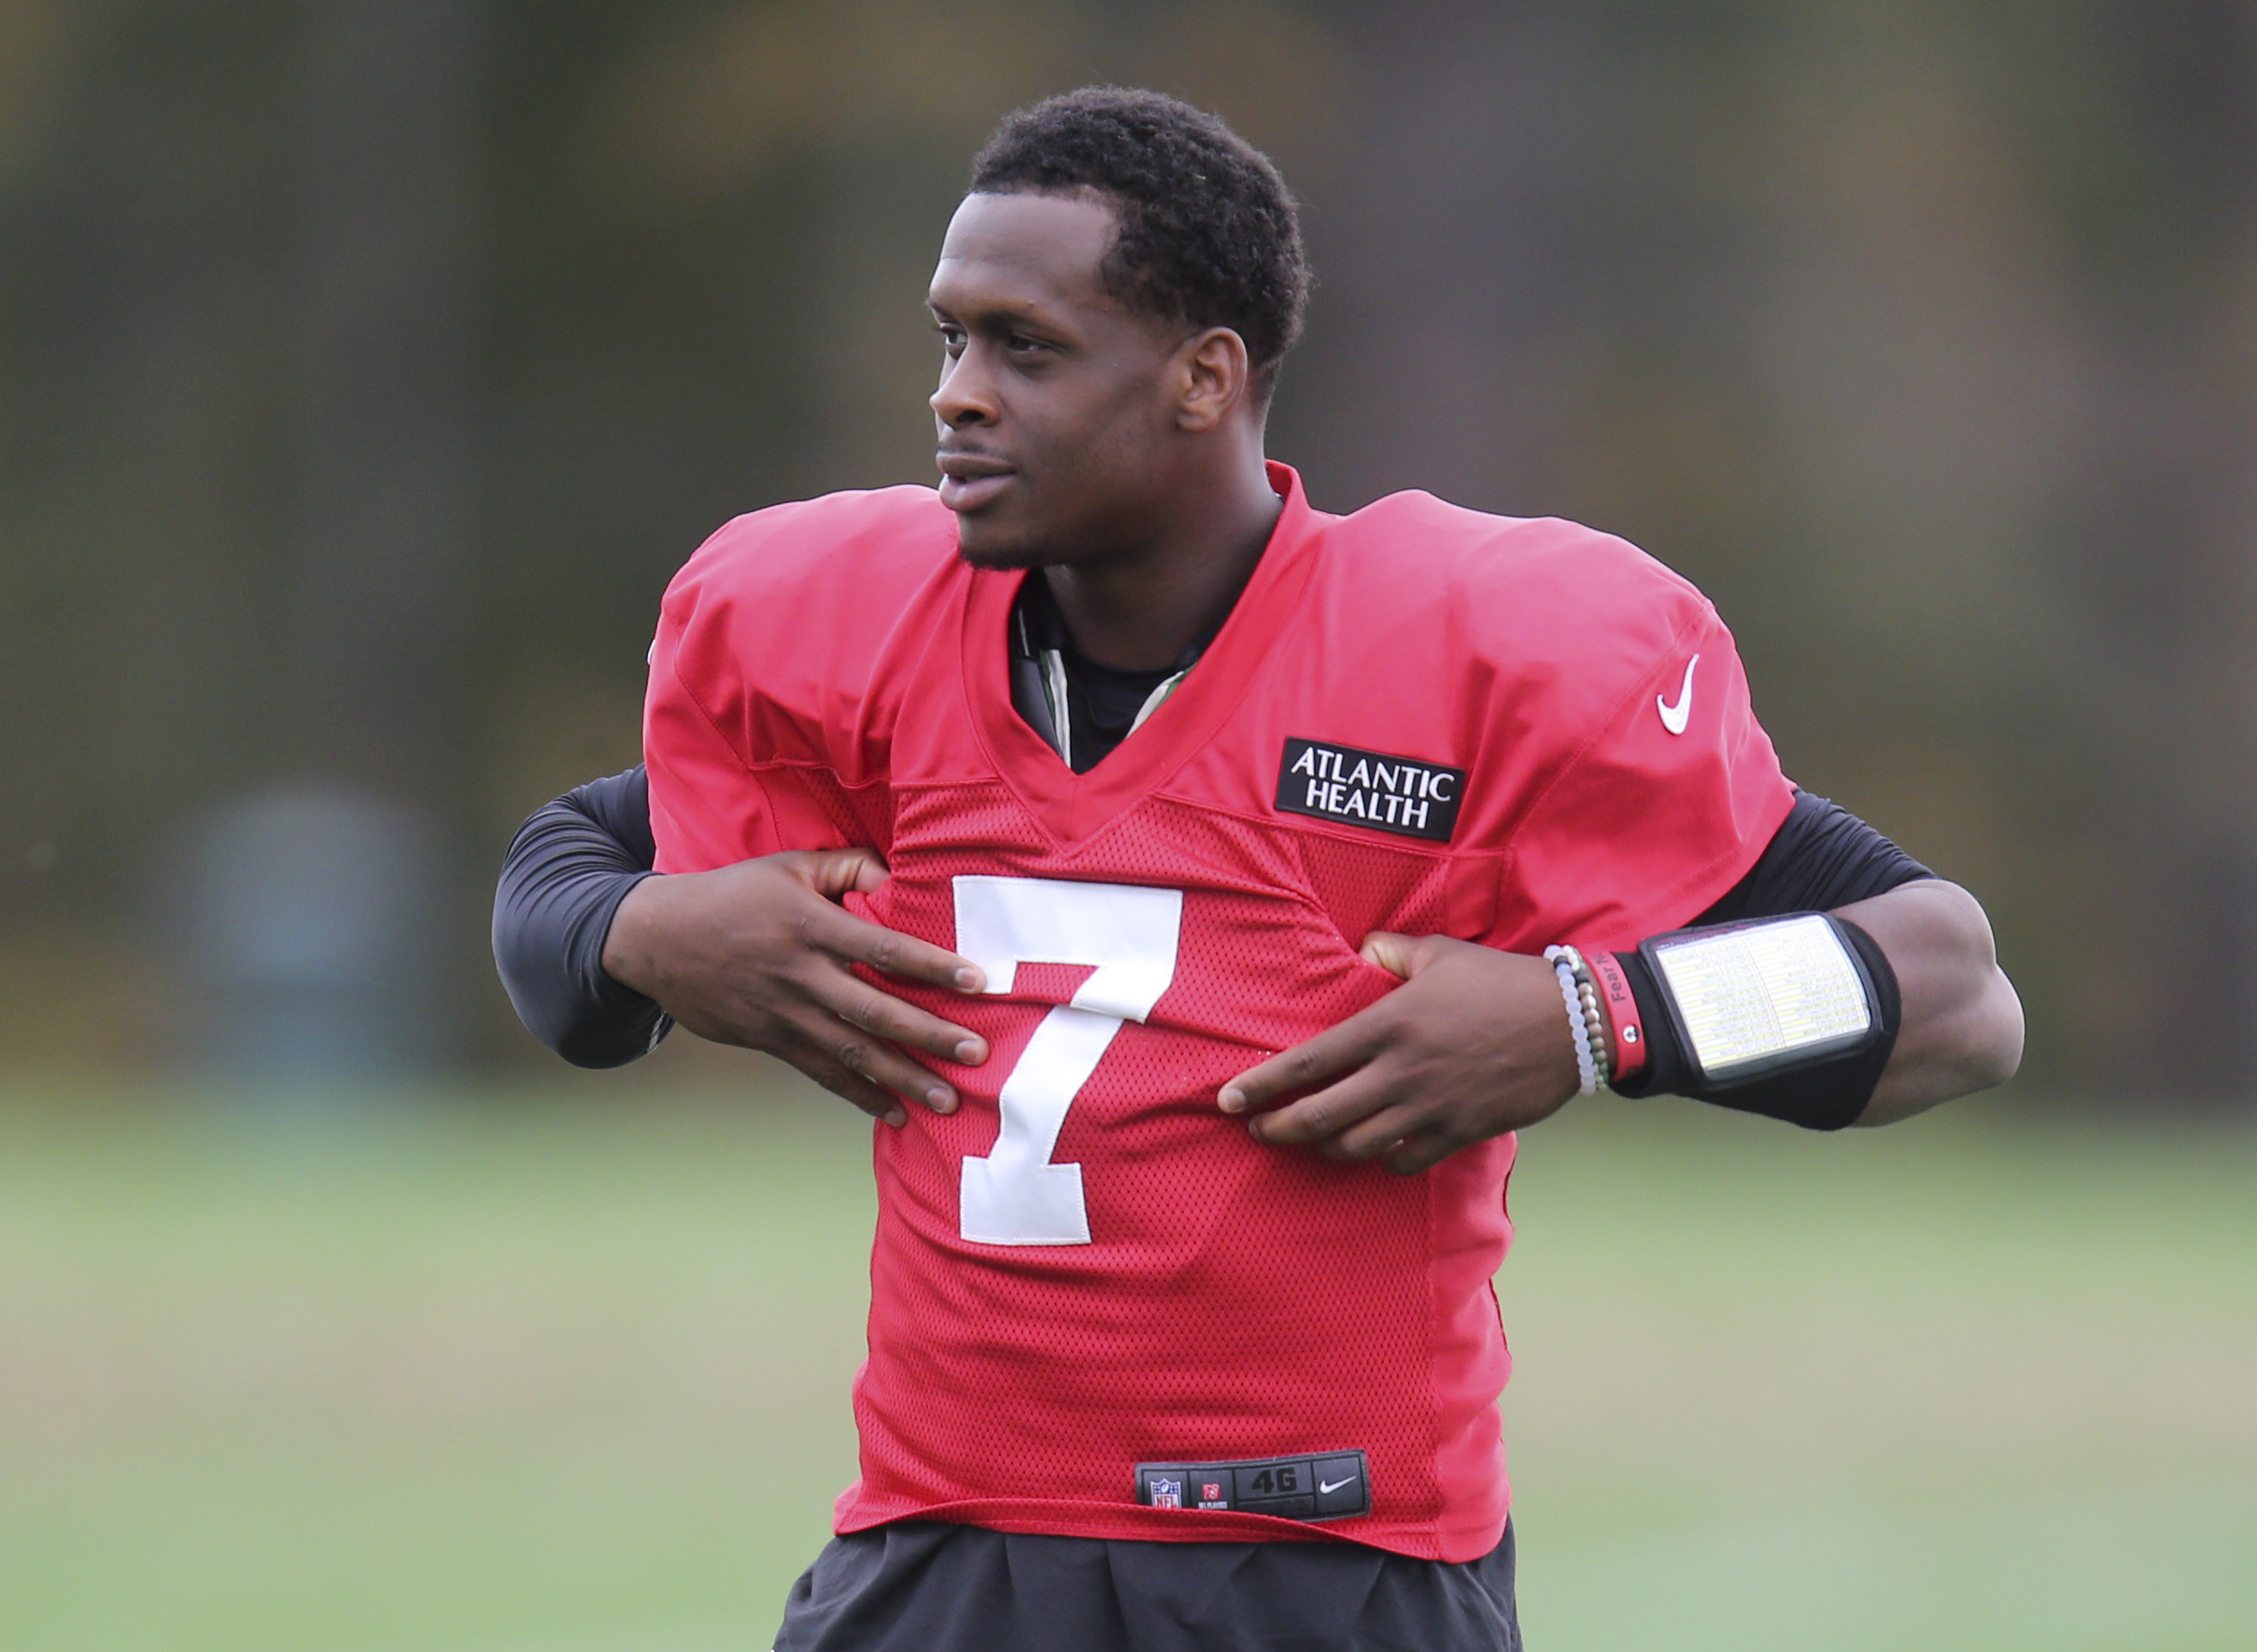 New York Jets quarterback Geno Smith adjusts his pads during a NFL football practice in Florham Park, N.J., Thursday, Oct. 20, 2016. Chan Gailey was Todd Bowles' hand-picked offensive coordinator when he was hired as Jets coach last year. After a terrific